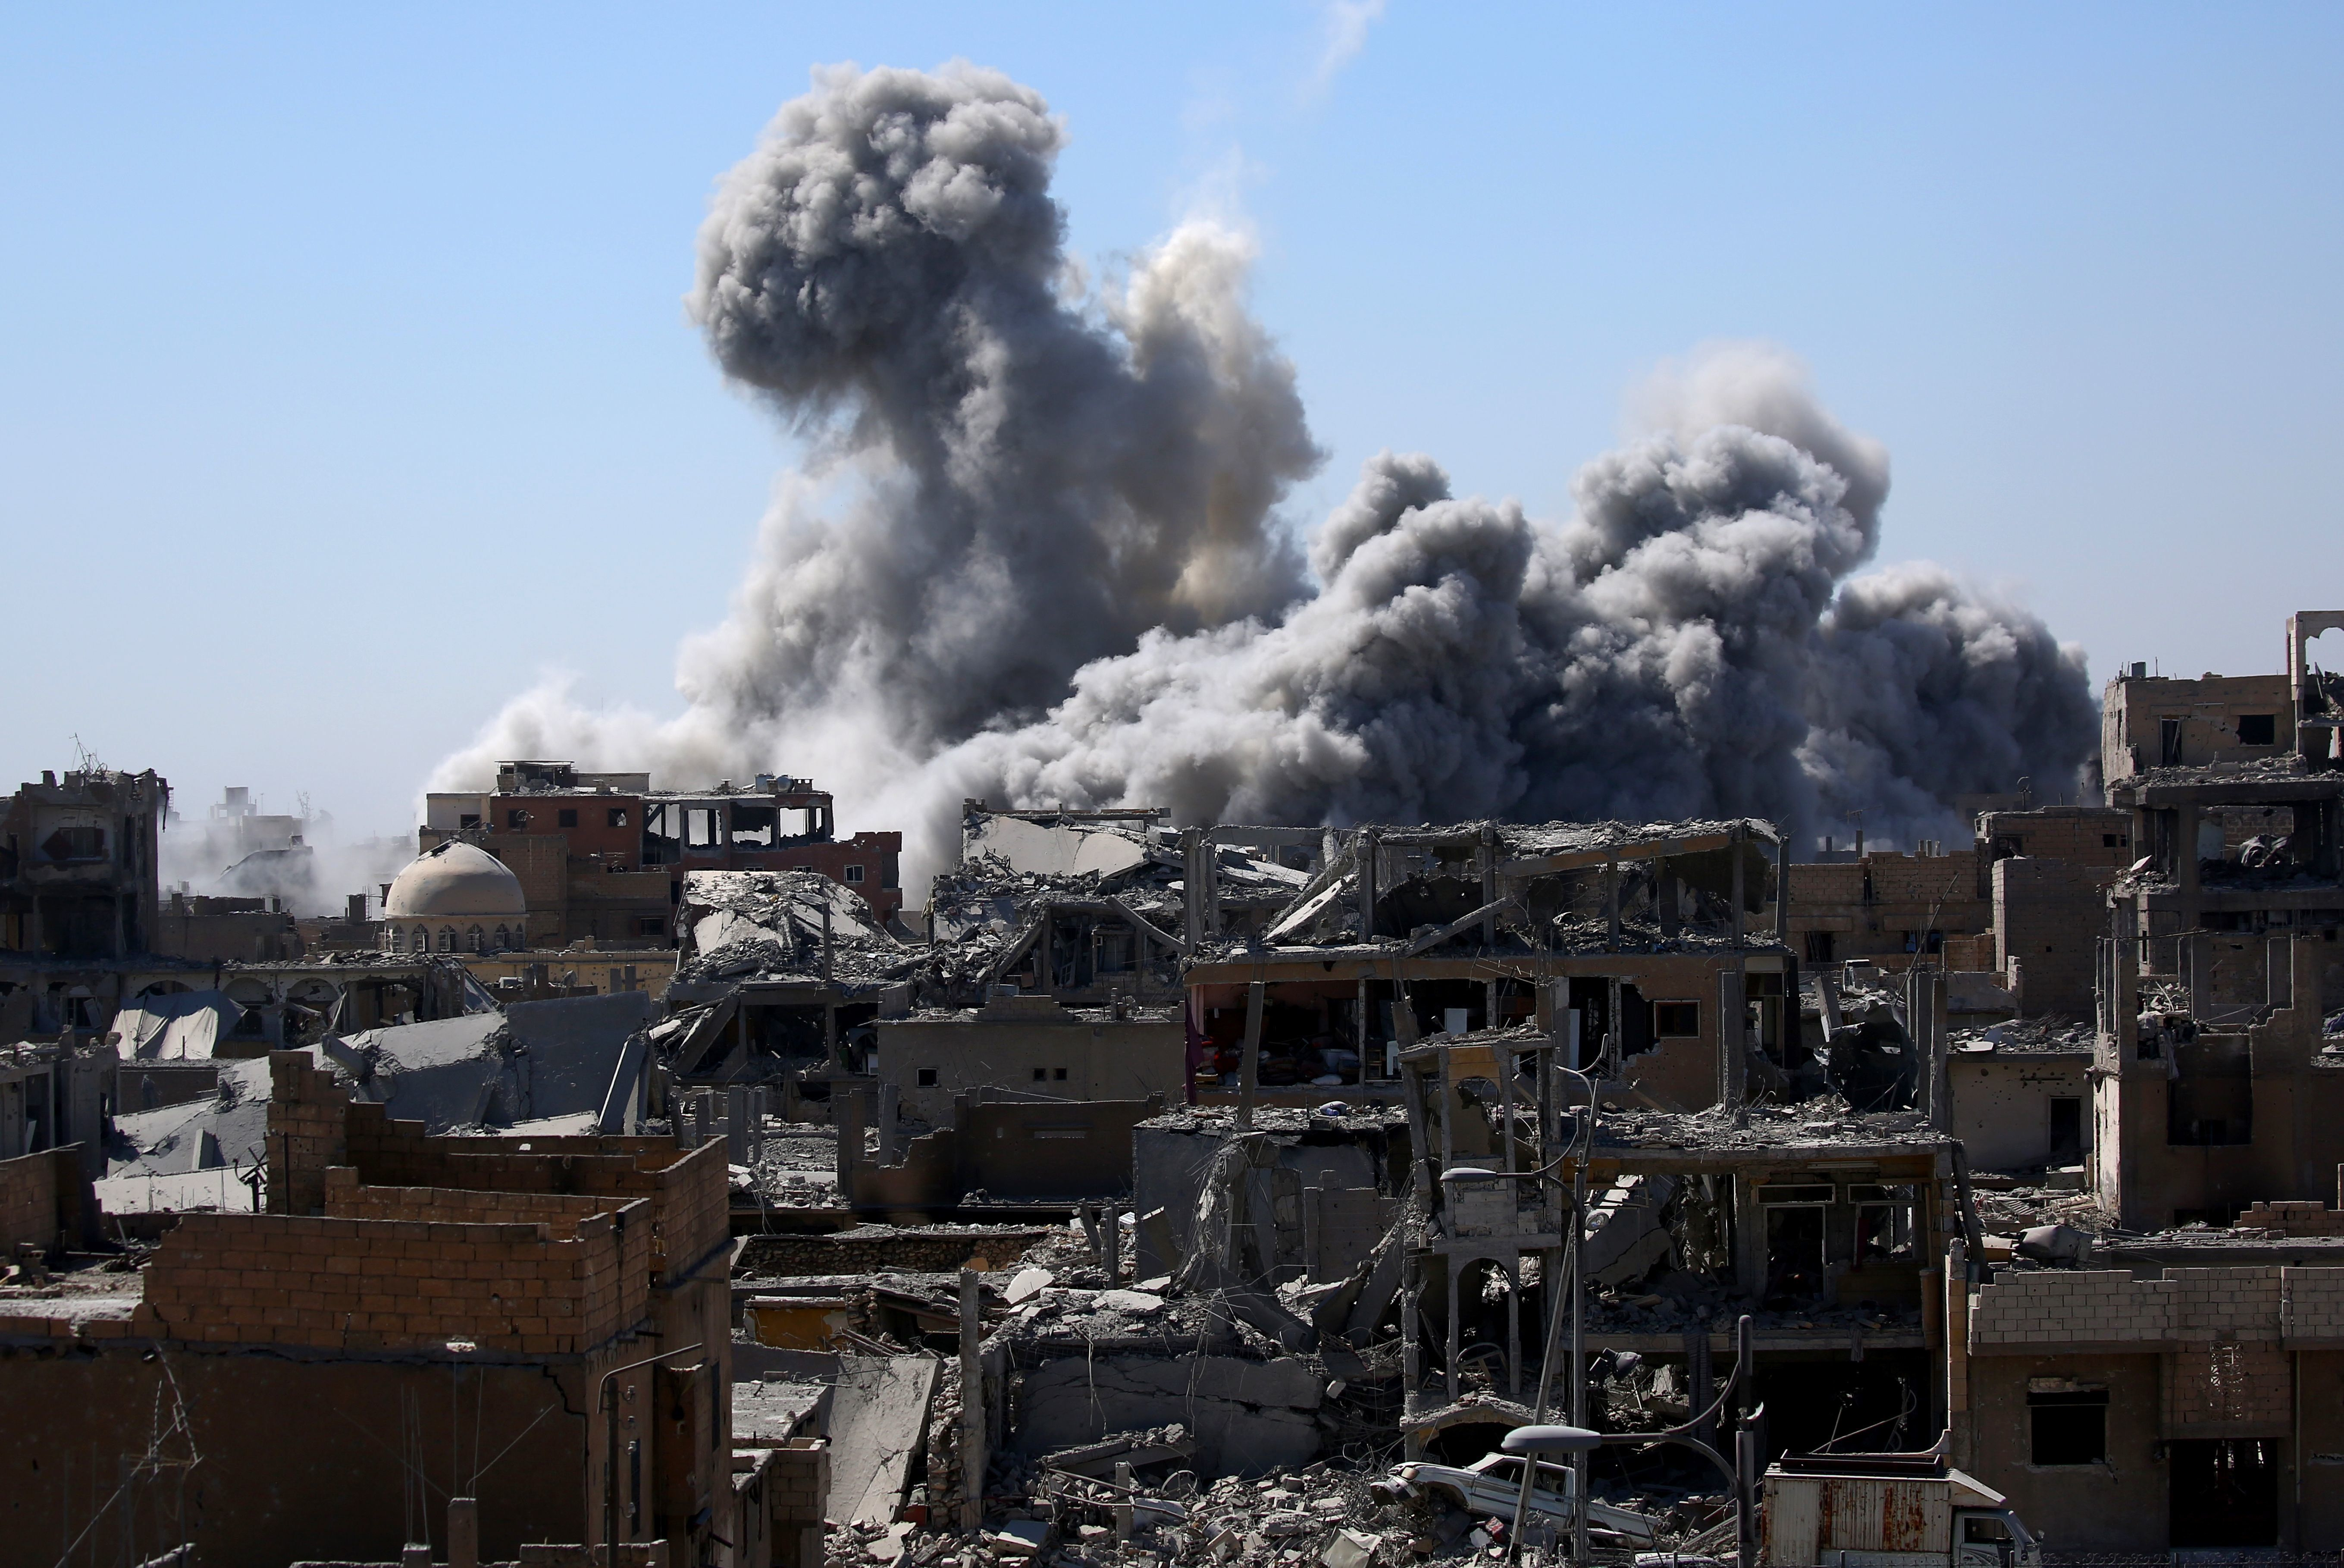 Smoke billows in the embattled northern Syrian city of Raqa on September 3, 2017, as Syrian Democratic Forces (SDF), a US backed Kurdish-Arab alliance, battle to retake the city from the Islamic State (IS) group.  / AFP PHOTO / DELIL SOULEIMAN        (Photo credit should read DELIL SOULEIMAN/AFP/Getty Images)